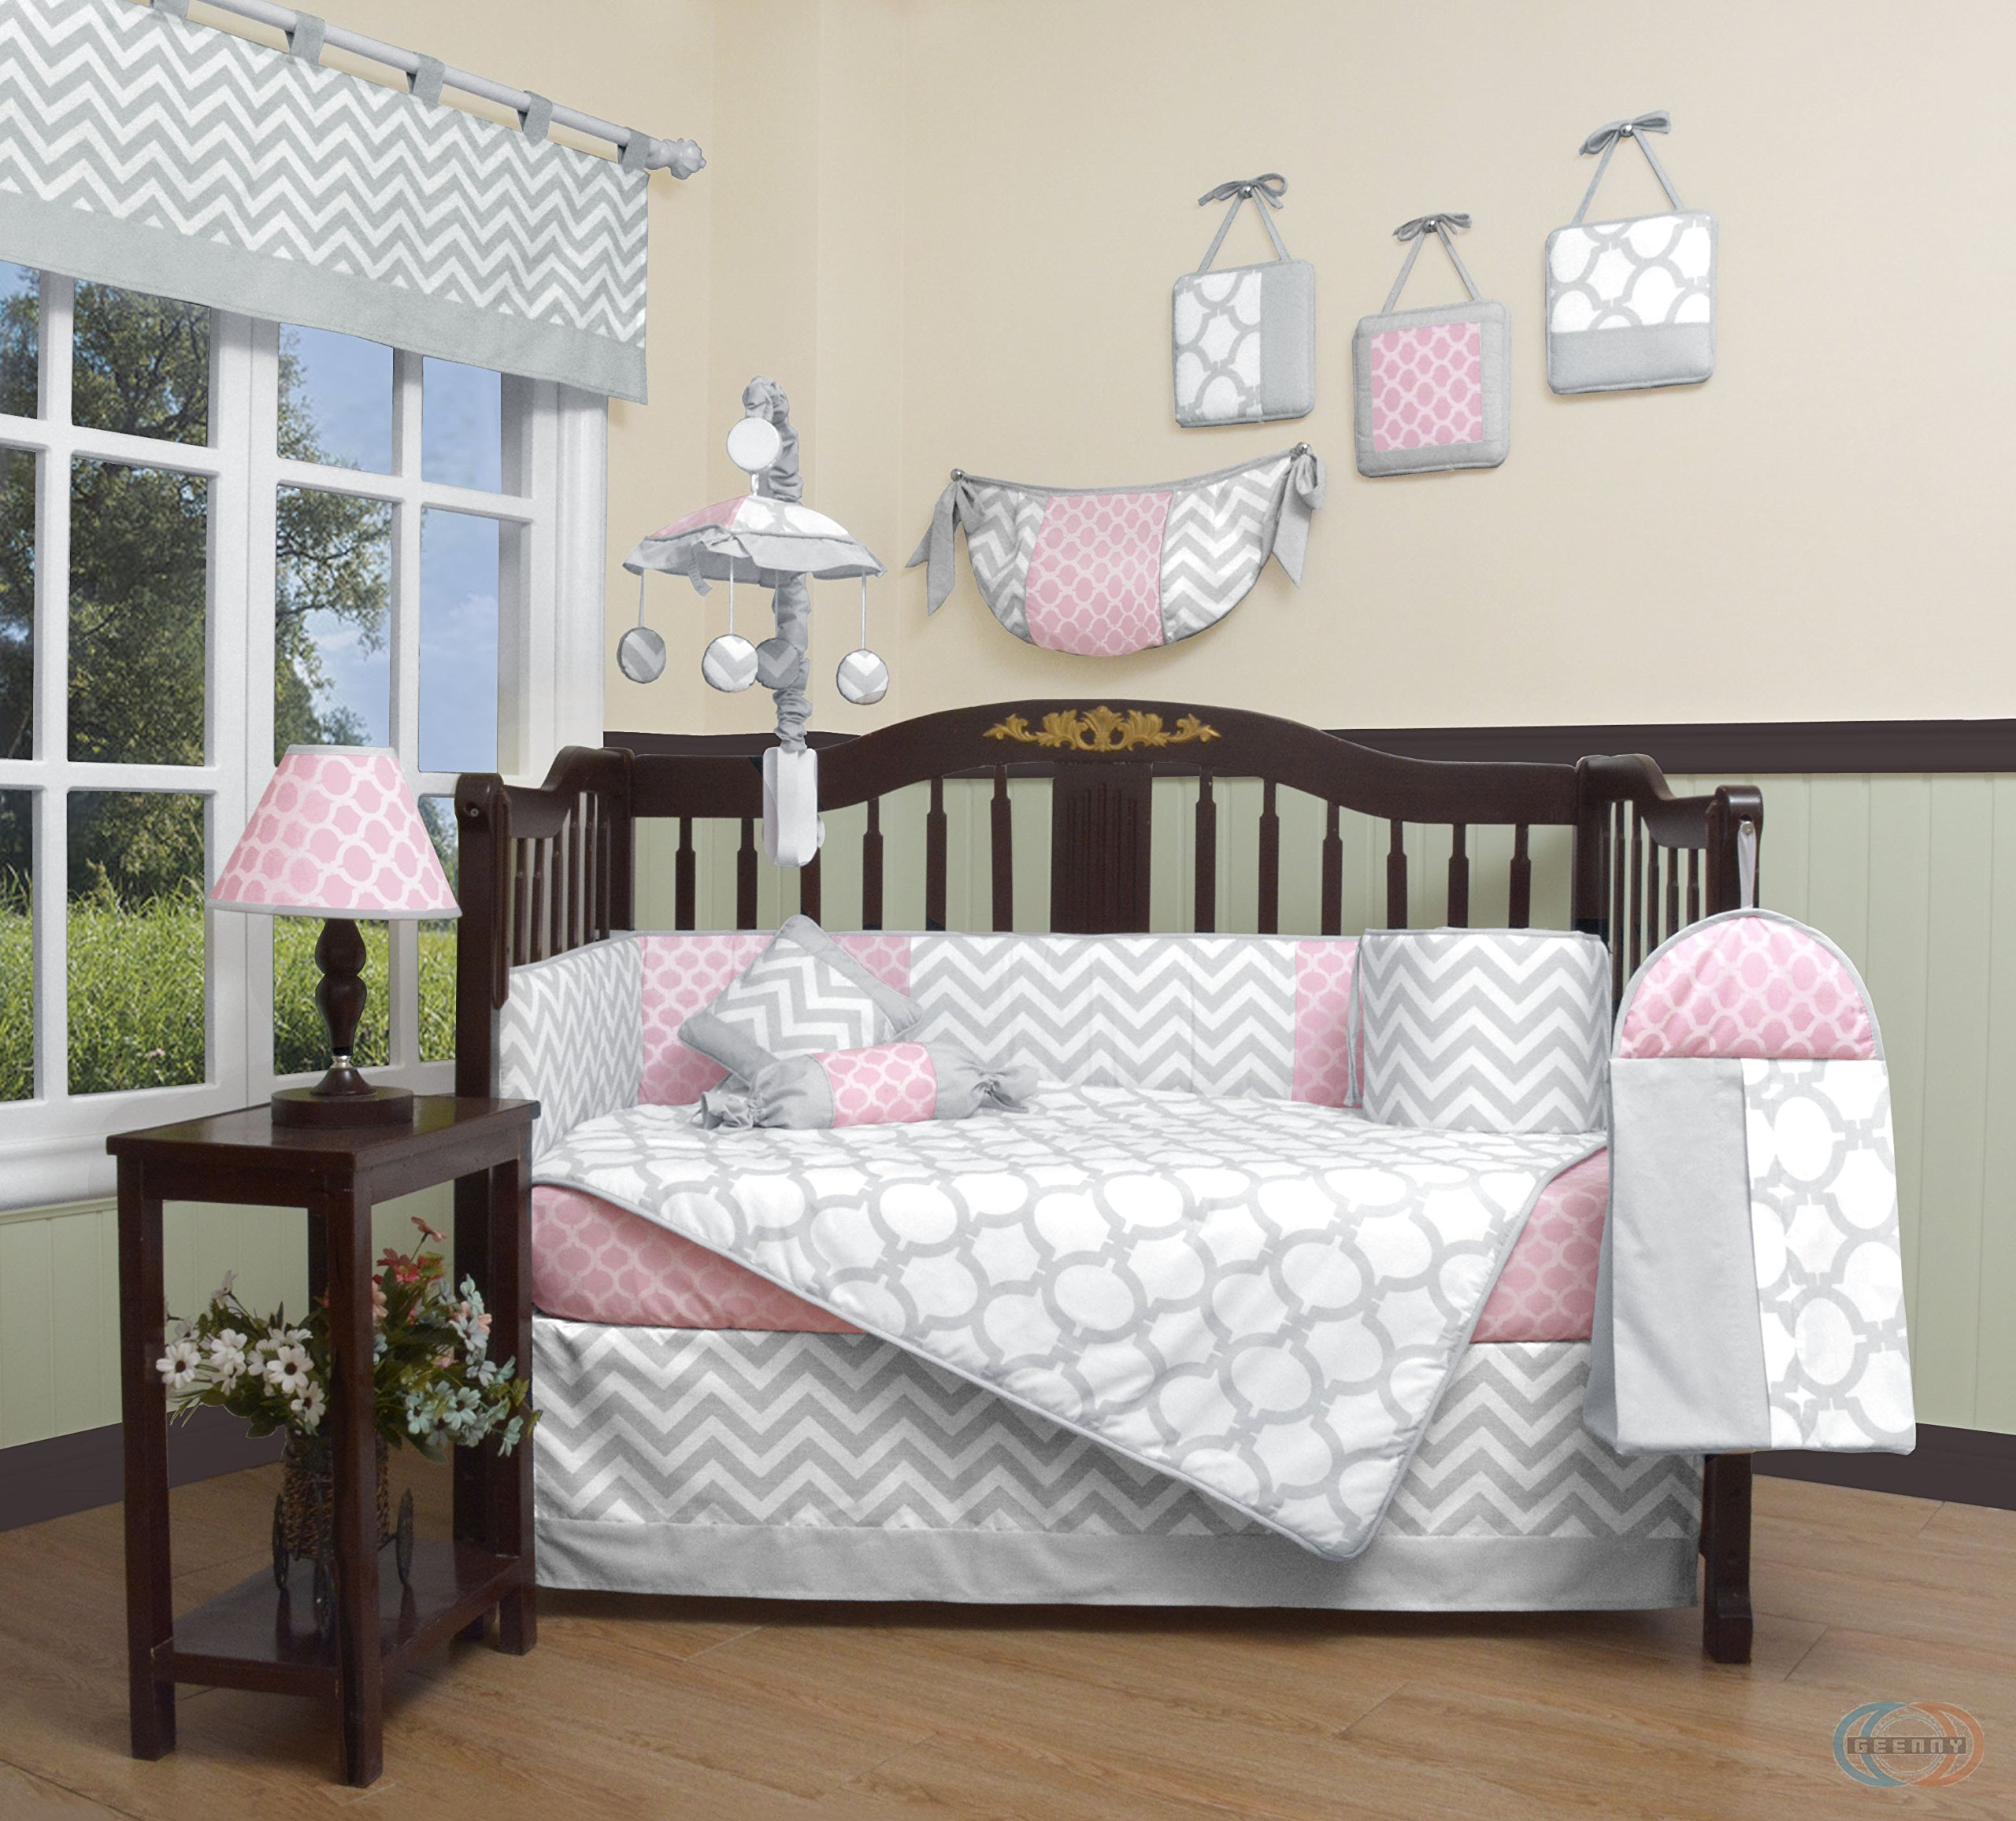 GEENNY Boutique Baby 13 Piece Crib Bedding Set, Salmon Pink/Gray Chevron by GEENNY